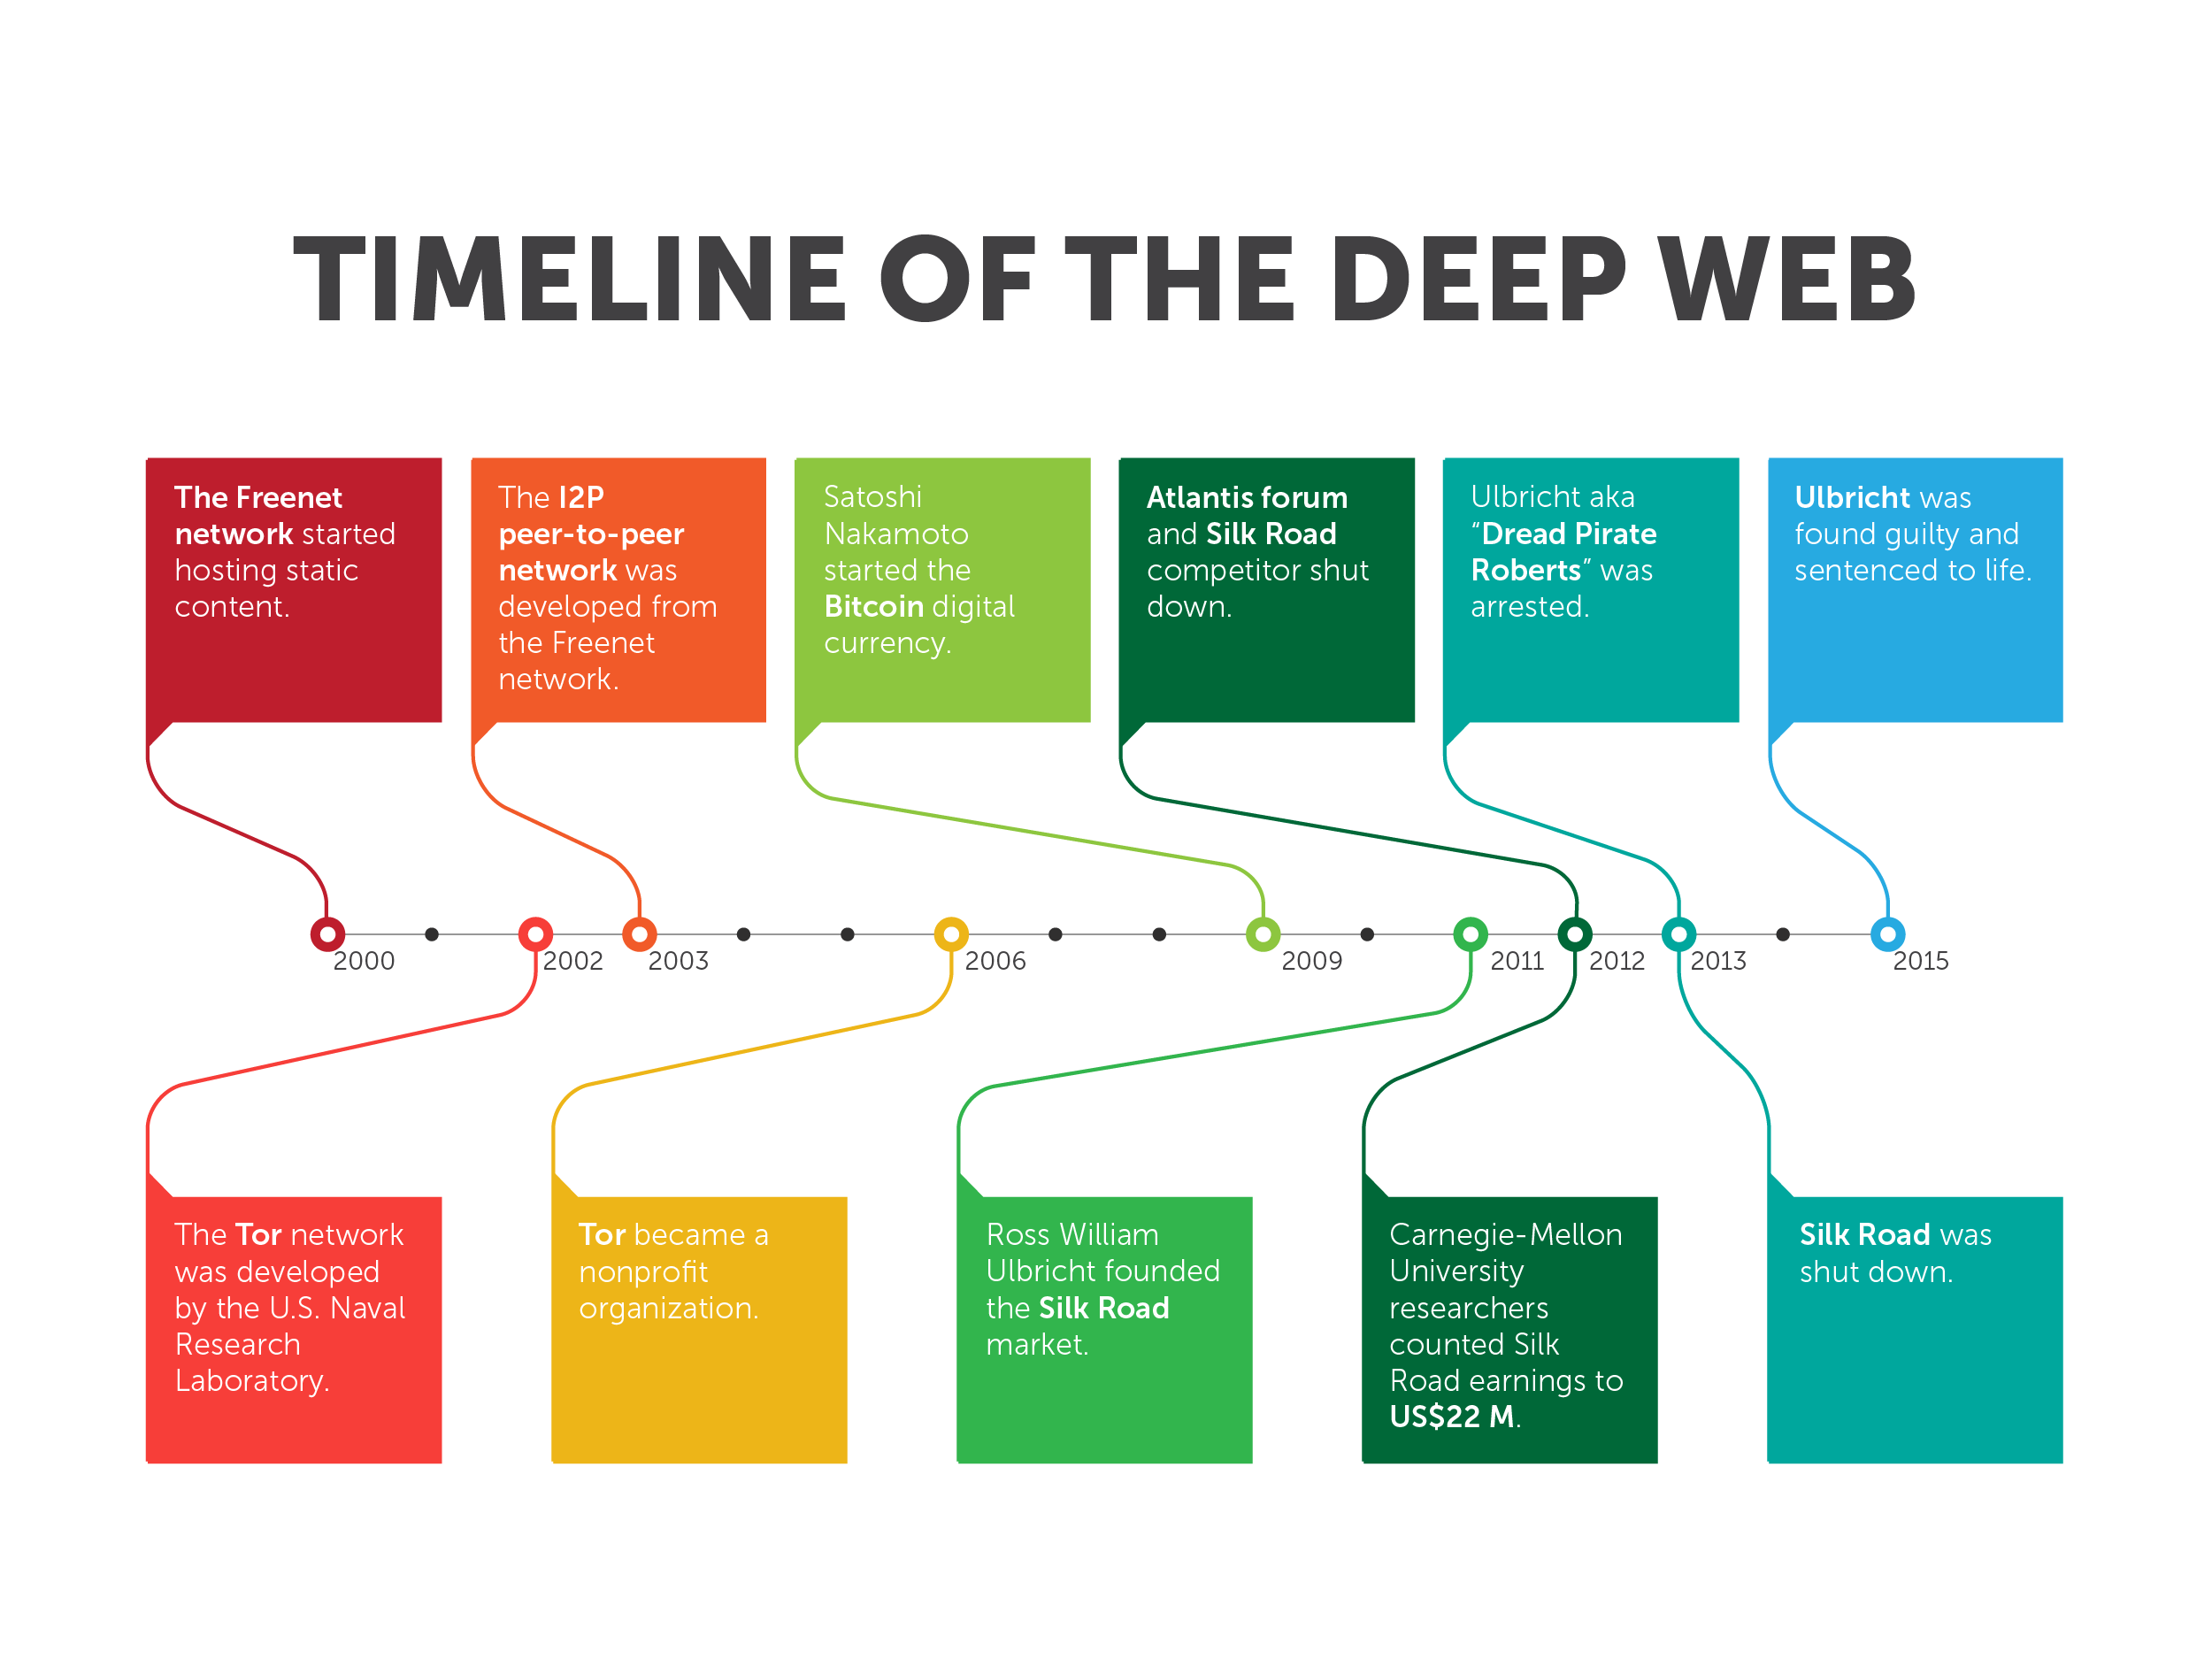 timeline of the deep web